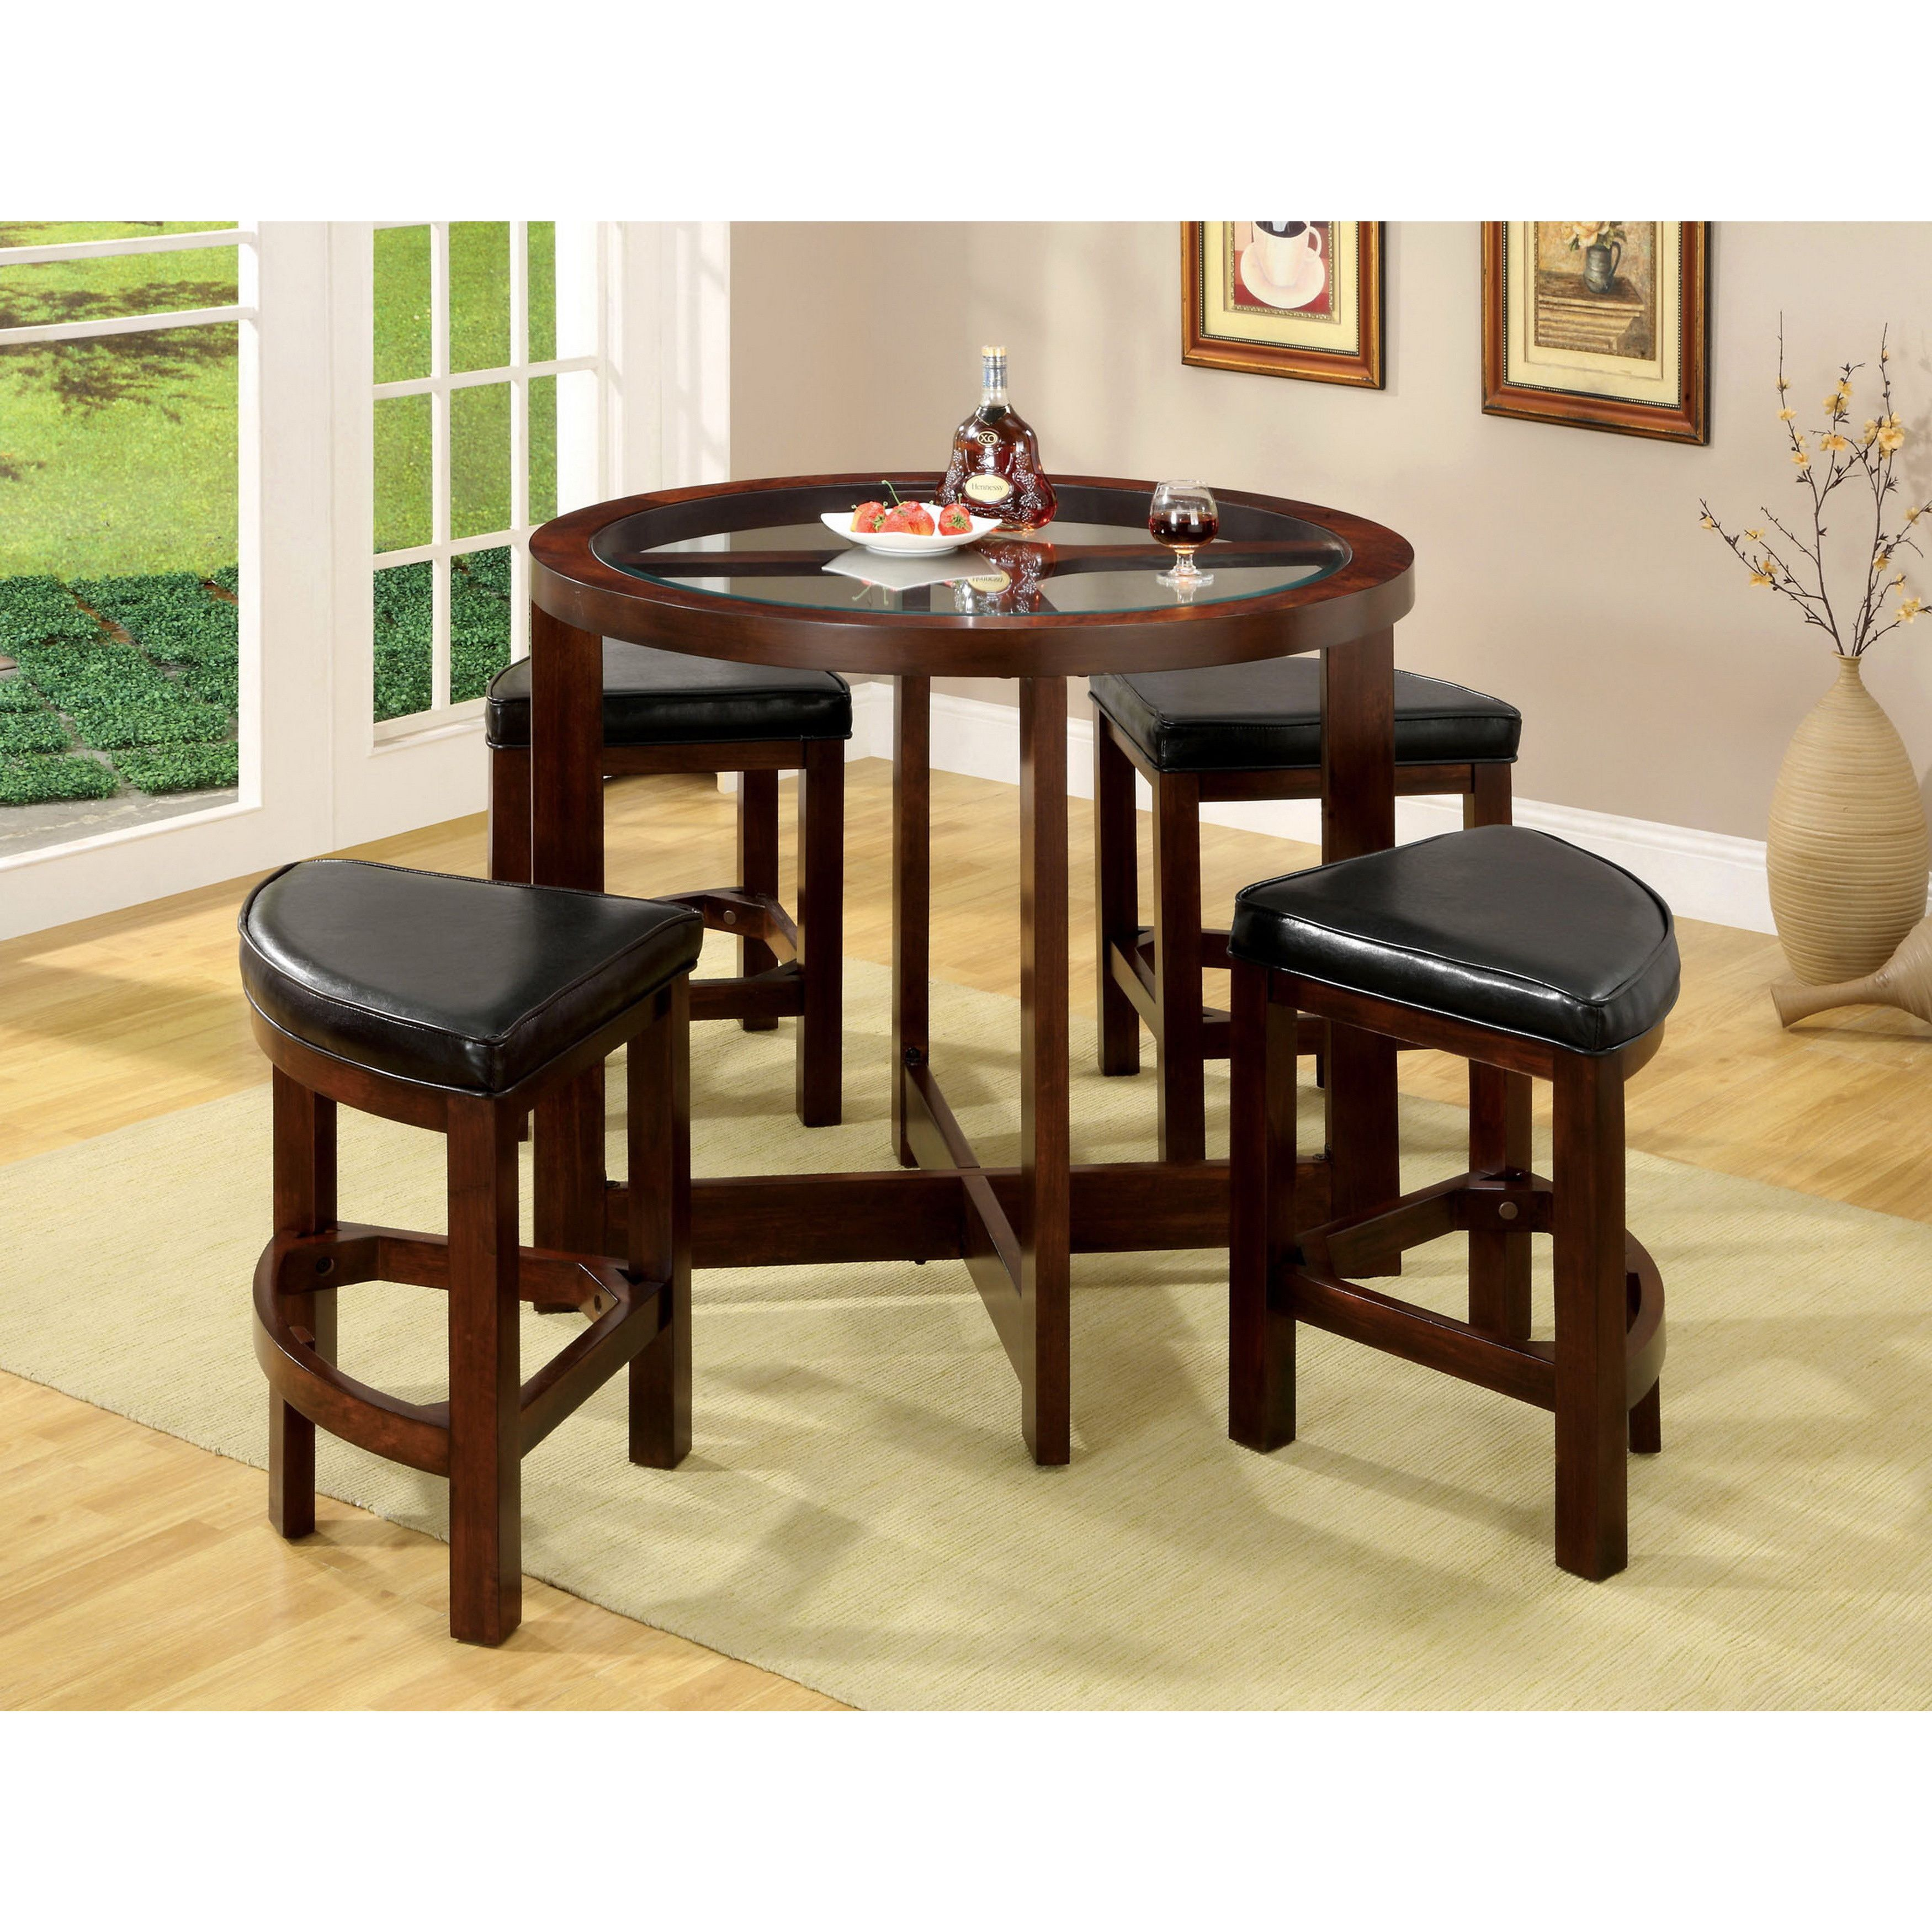 Overstock Com Online Shopping Bedding Furniture Electronics Jewelry Clothing More Pub Table Sets Counter Height Table Sets Round Counter Height Table